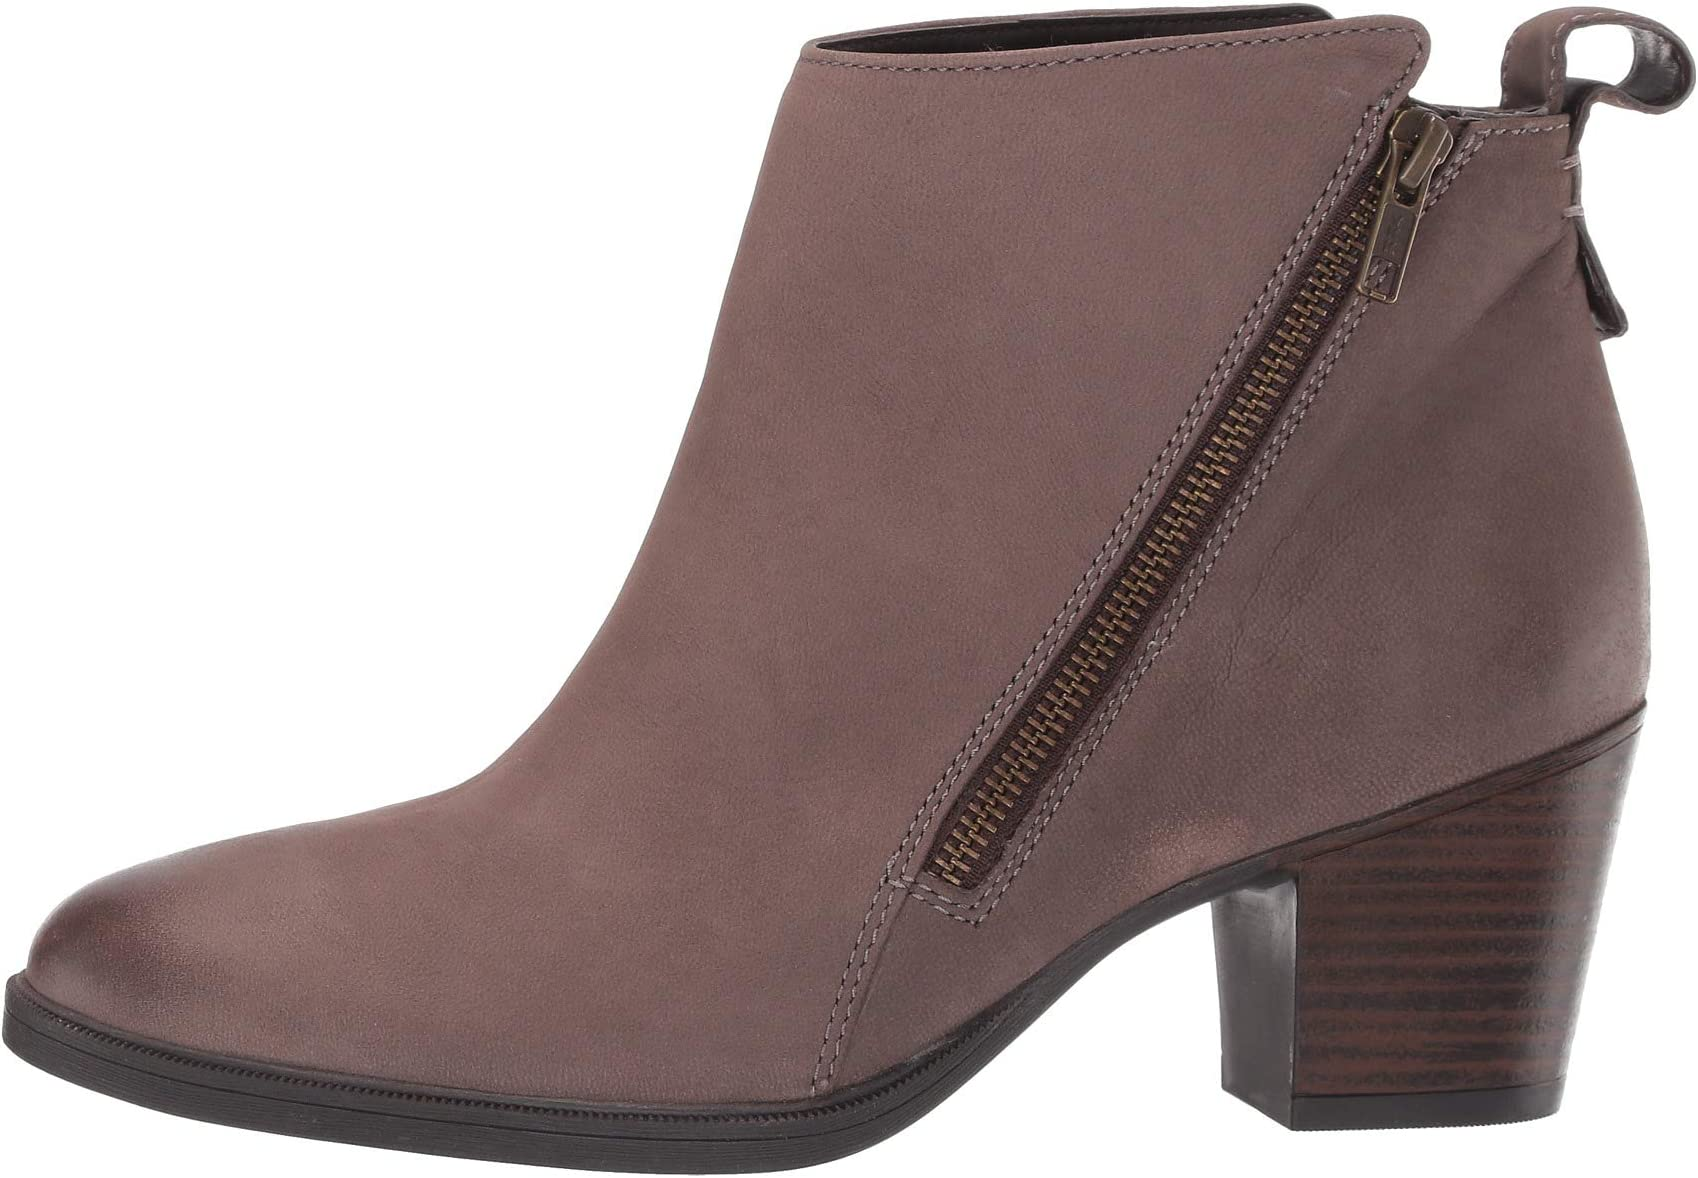 Rockport Maddie Ankle Zip Boot | Women's shoes | 2020 Newest